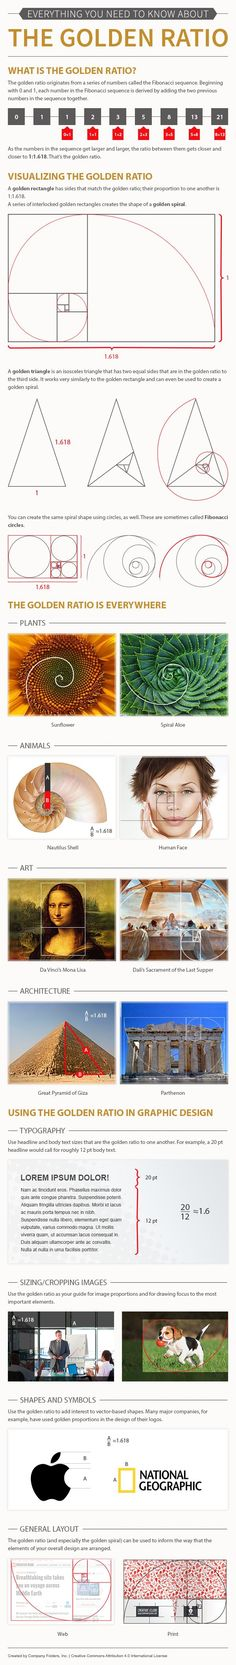 Everything You Need to Know About the Golden Ratio